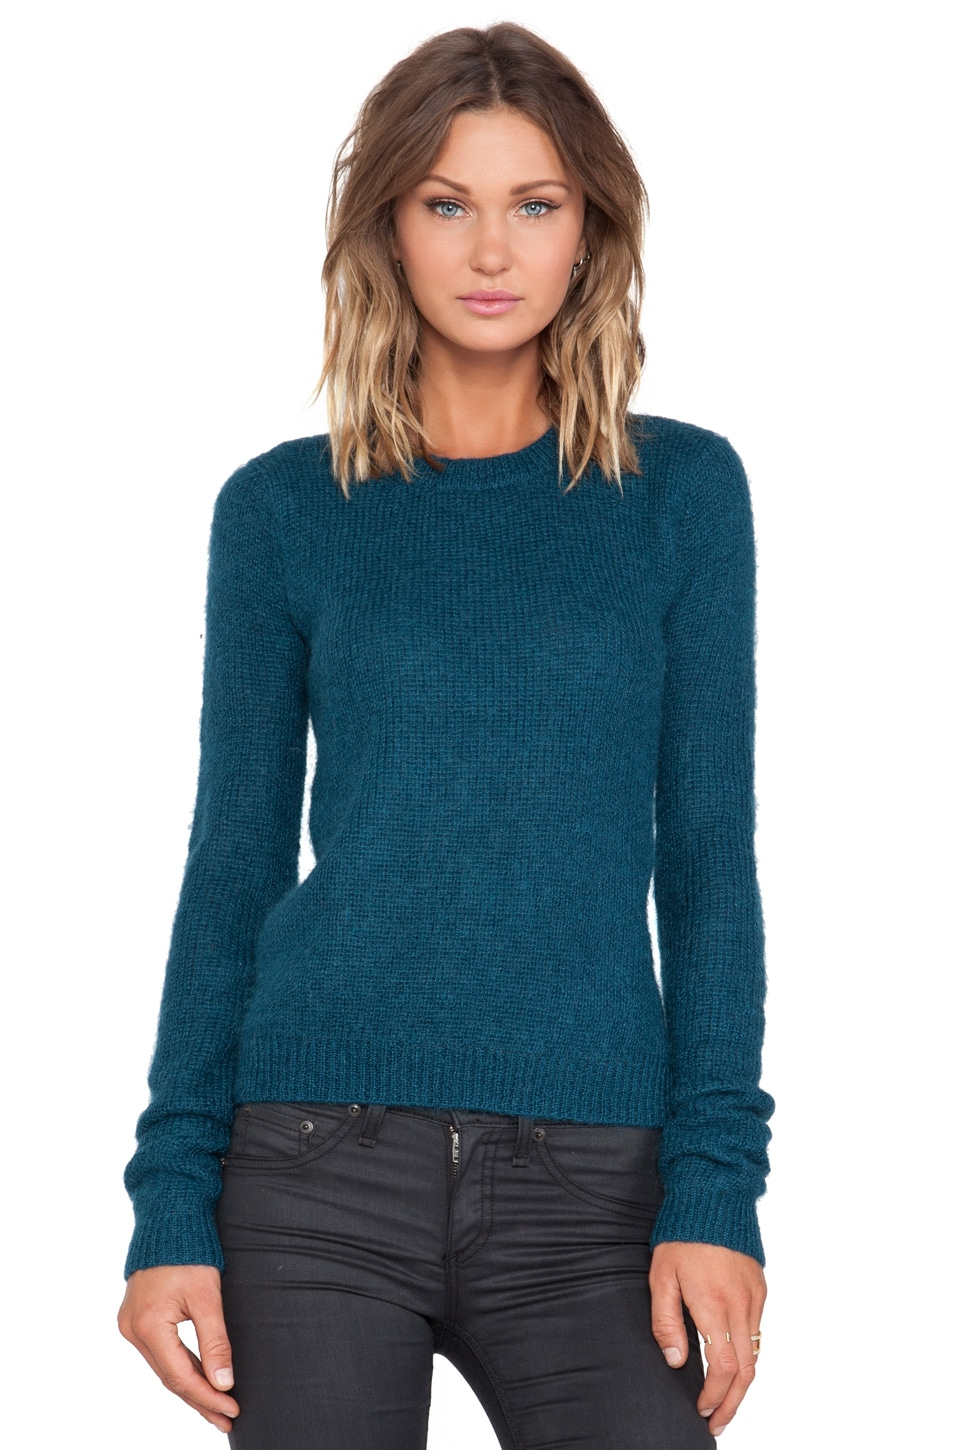 BLK DNM Sweater 21 in Emerald Blue